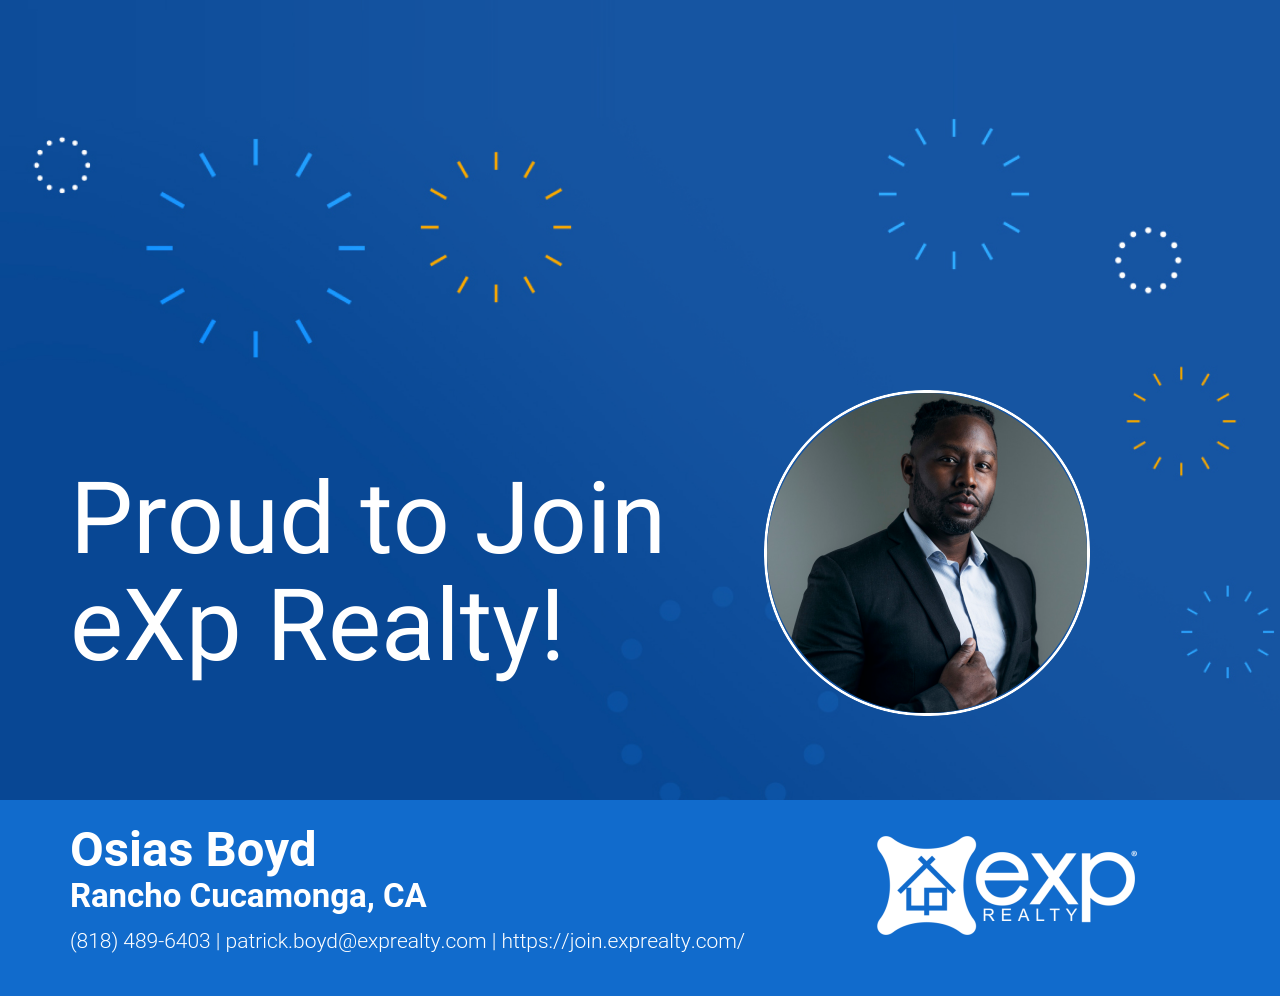 Osias Boyd Joined eXp Realty!